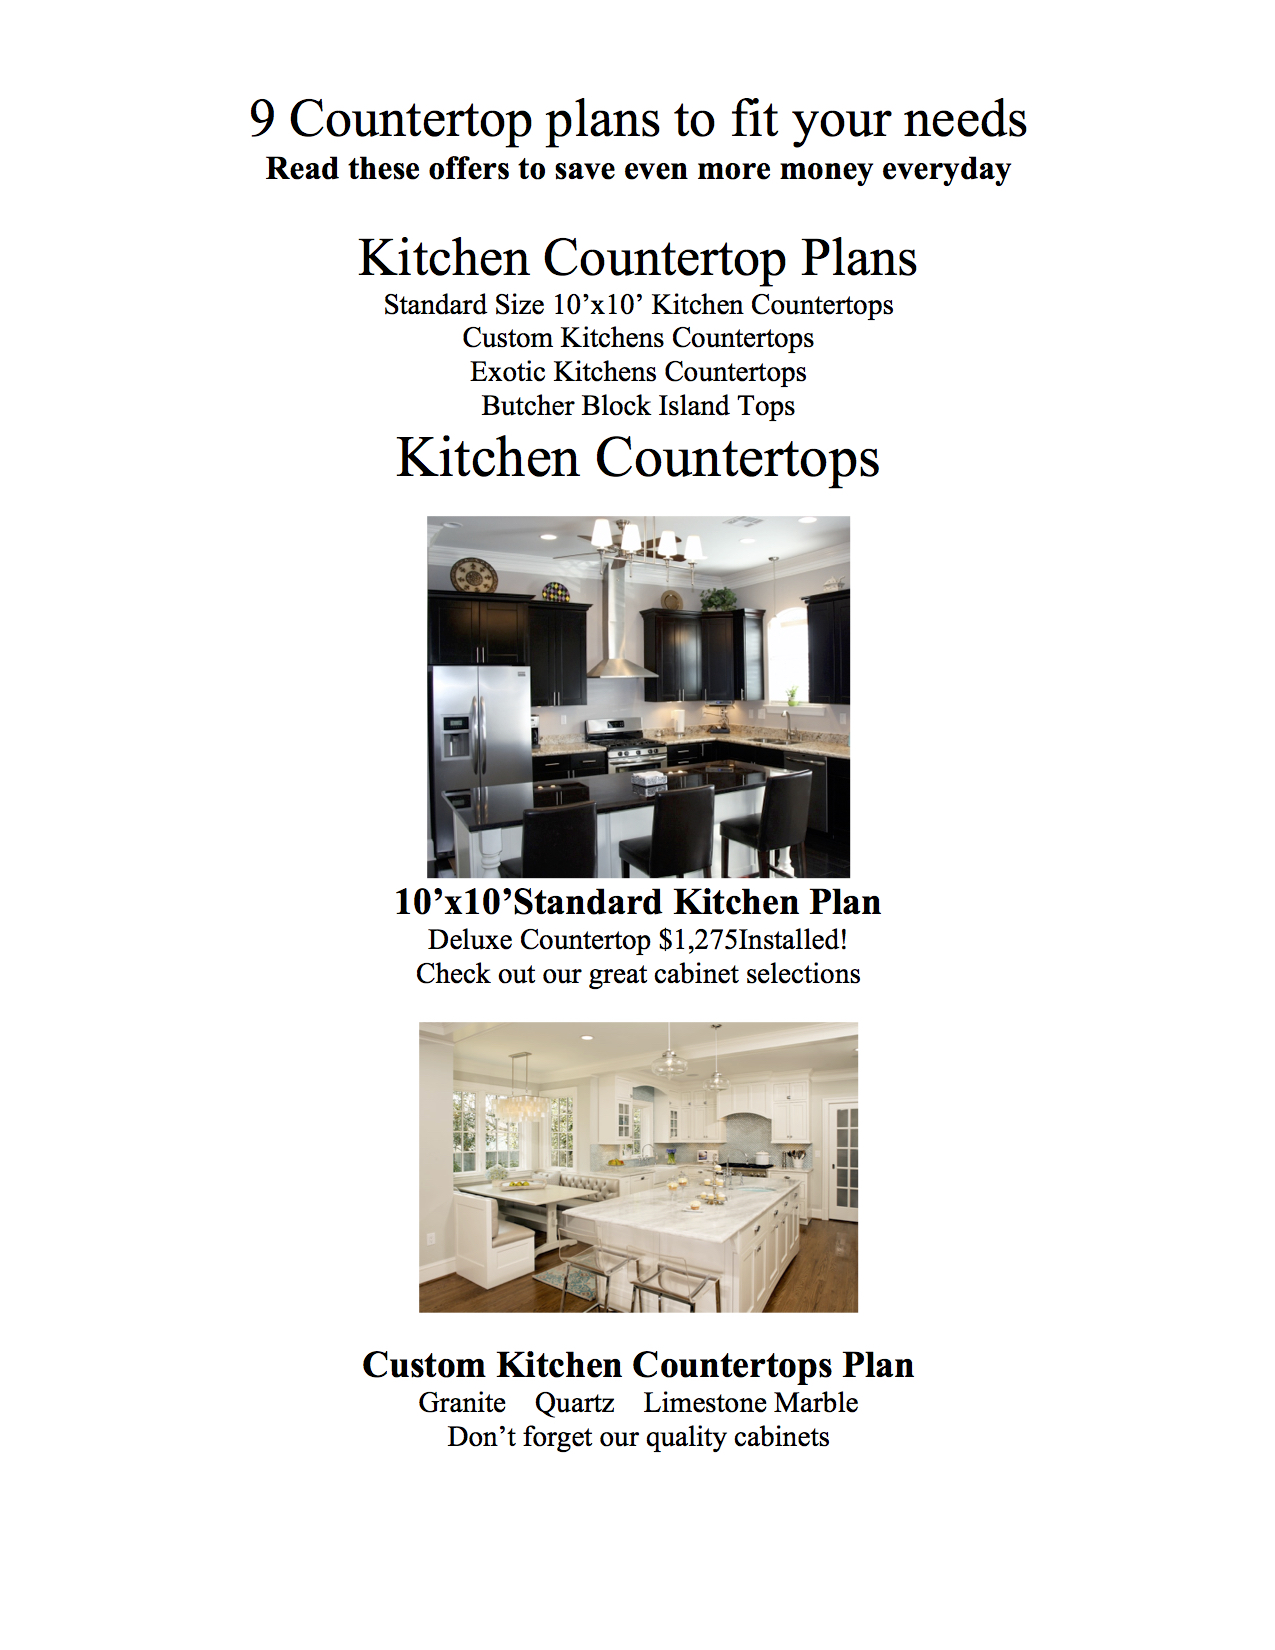 kitchencounter-4